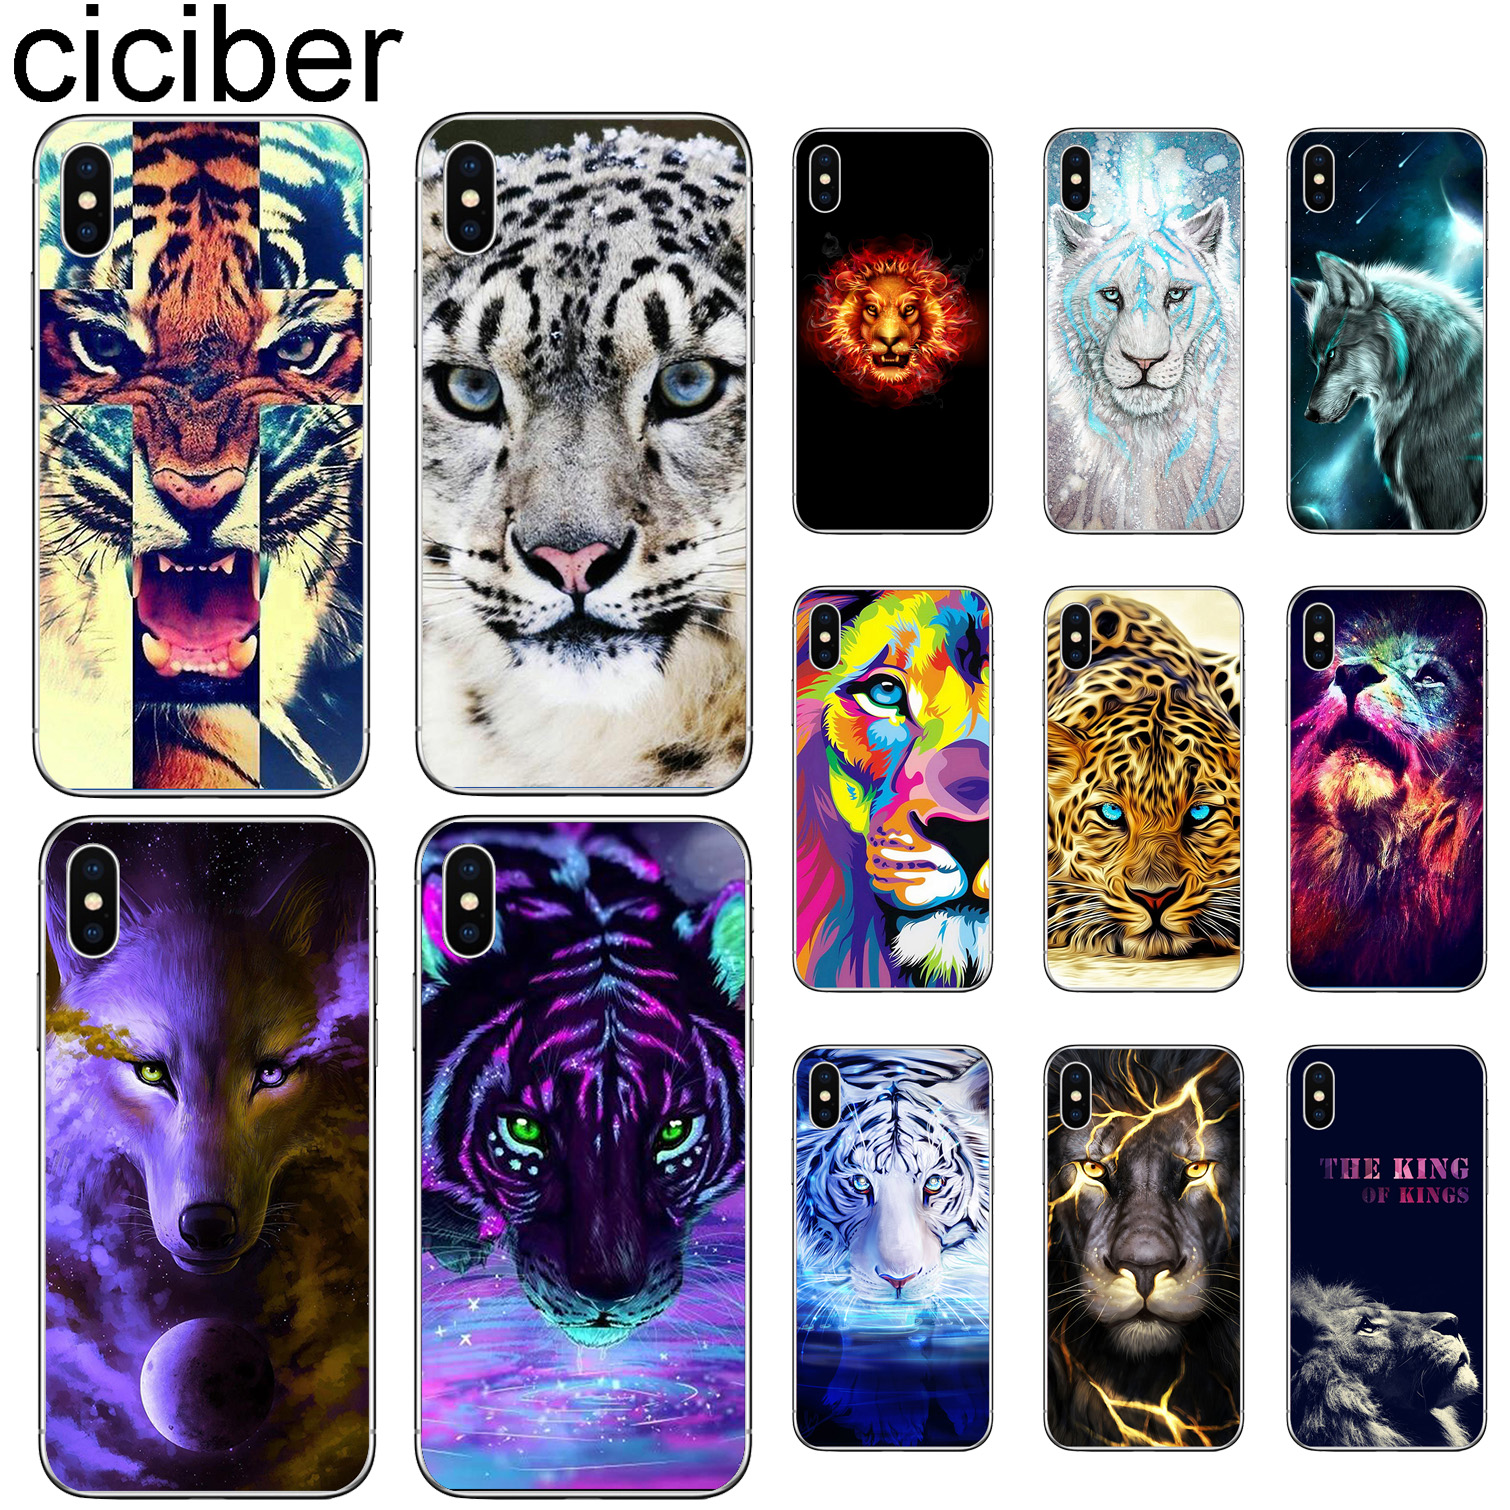 ciciber Phone Cases For Iphone 11 Pro Case Cover For iPhone XR 11 Pro 7 X XS MAX 8 6 6S Plus 5S SE Silicone Animal Lion Tiger